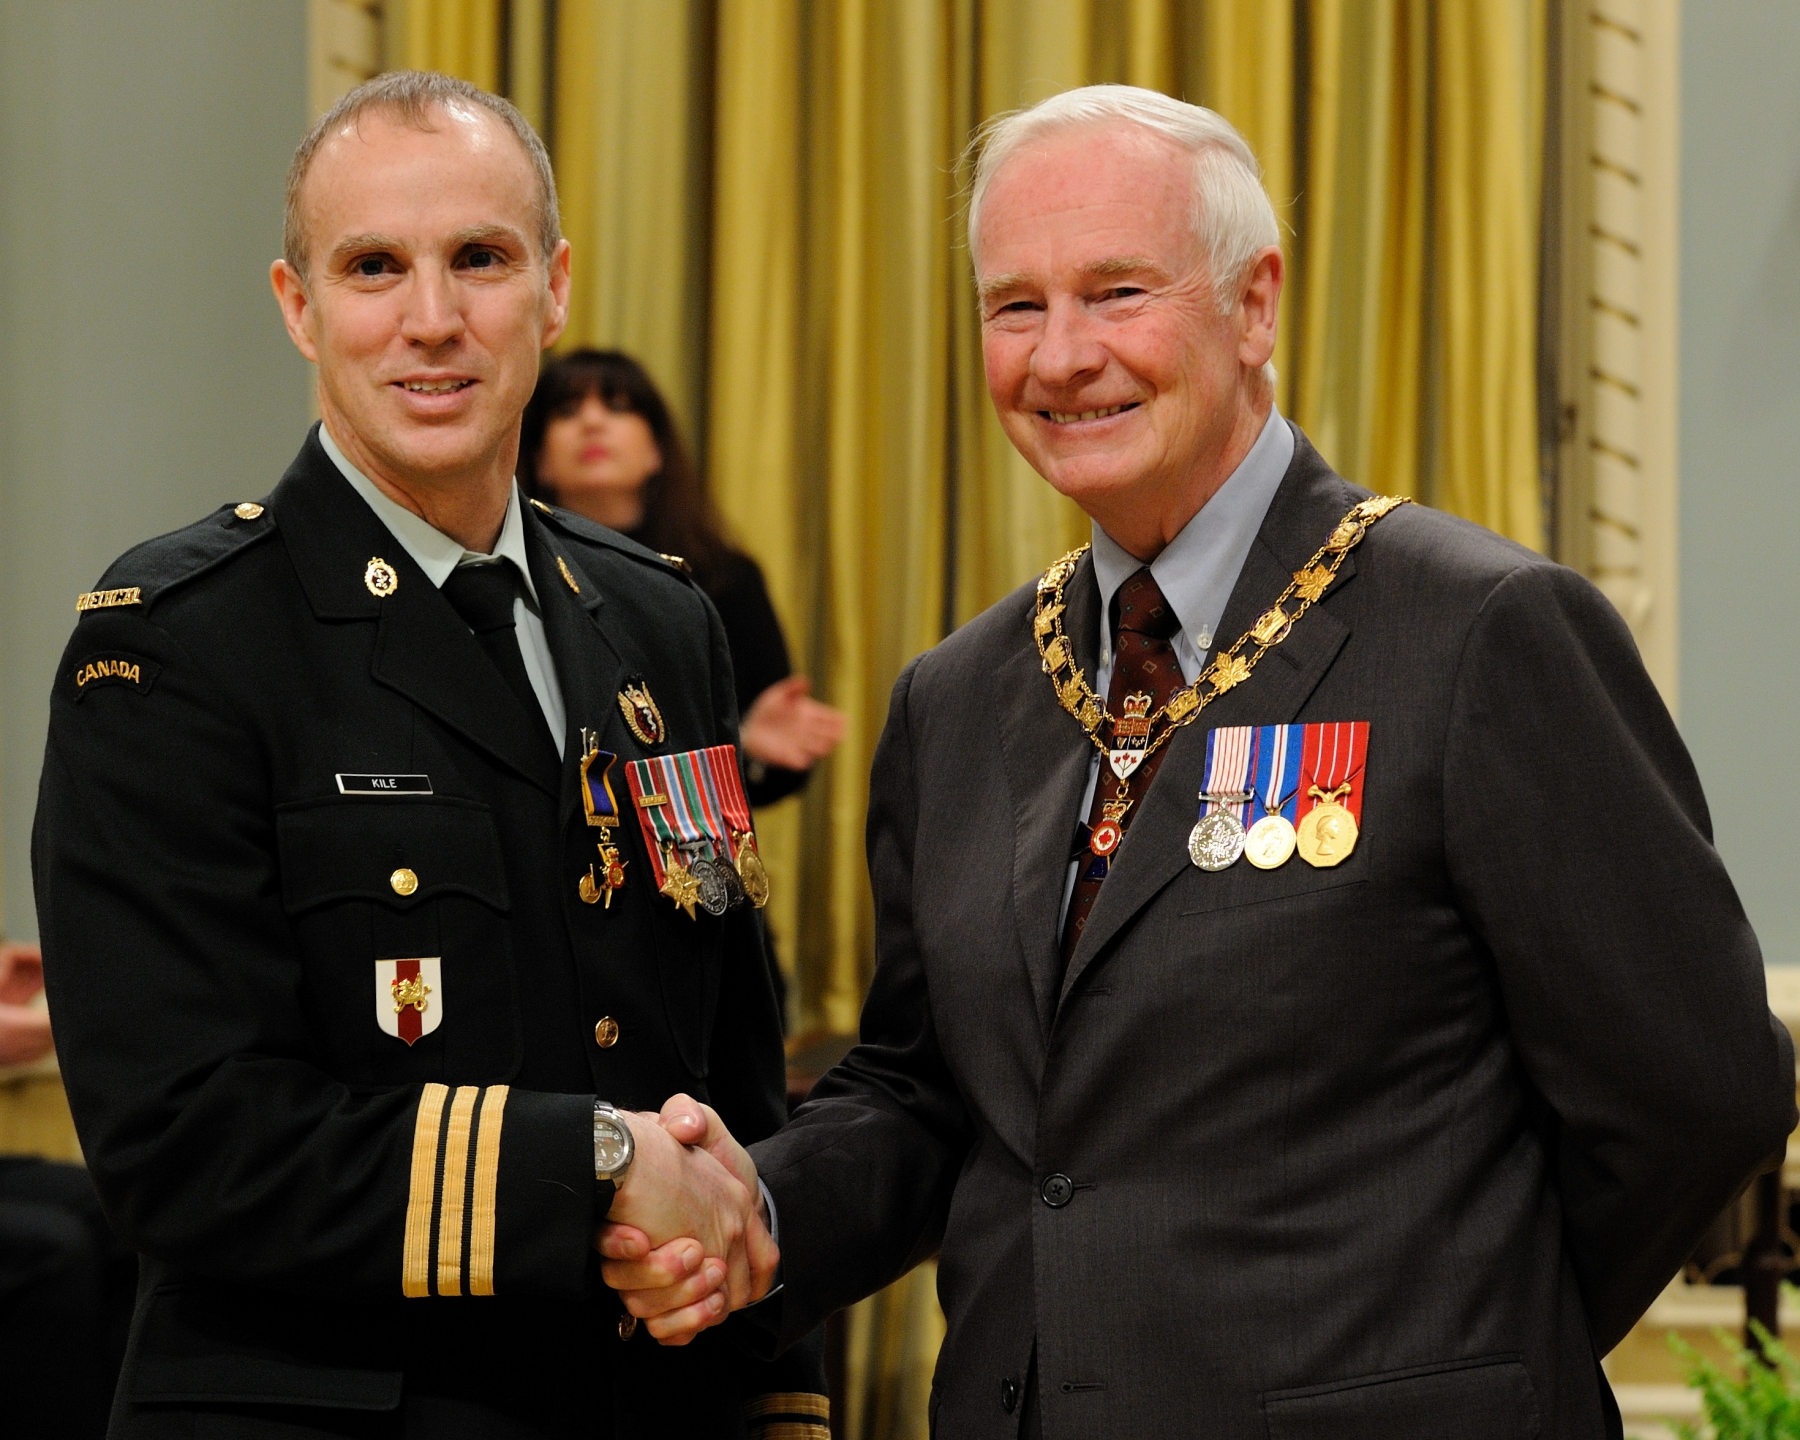 His Excellency presented the Order of Military Merit at the Officer level (O.M.M.) to Lieutenant-Colonel James Kile, O.M.M., C.D., 2 Field Ambulance, Petawawa, Ontario.